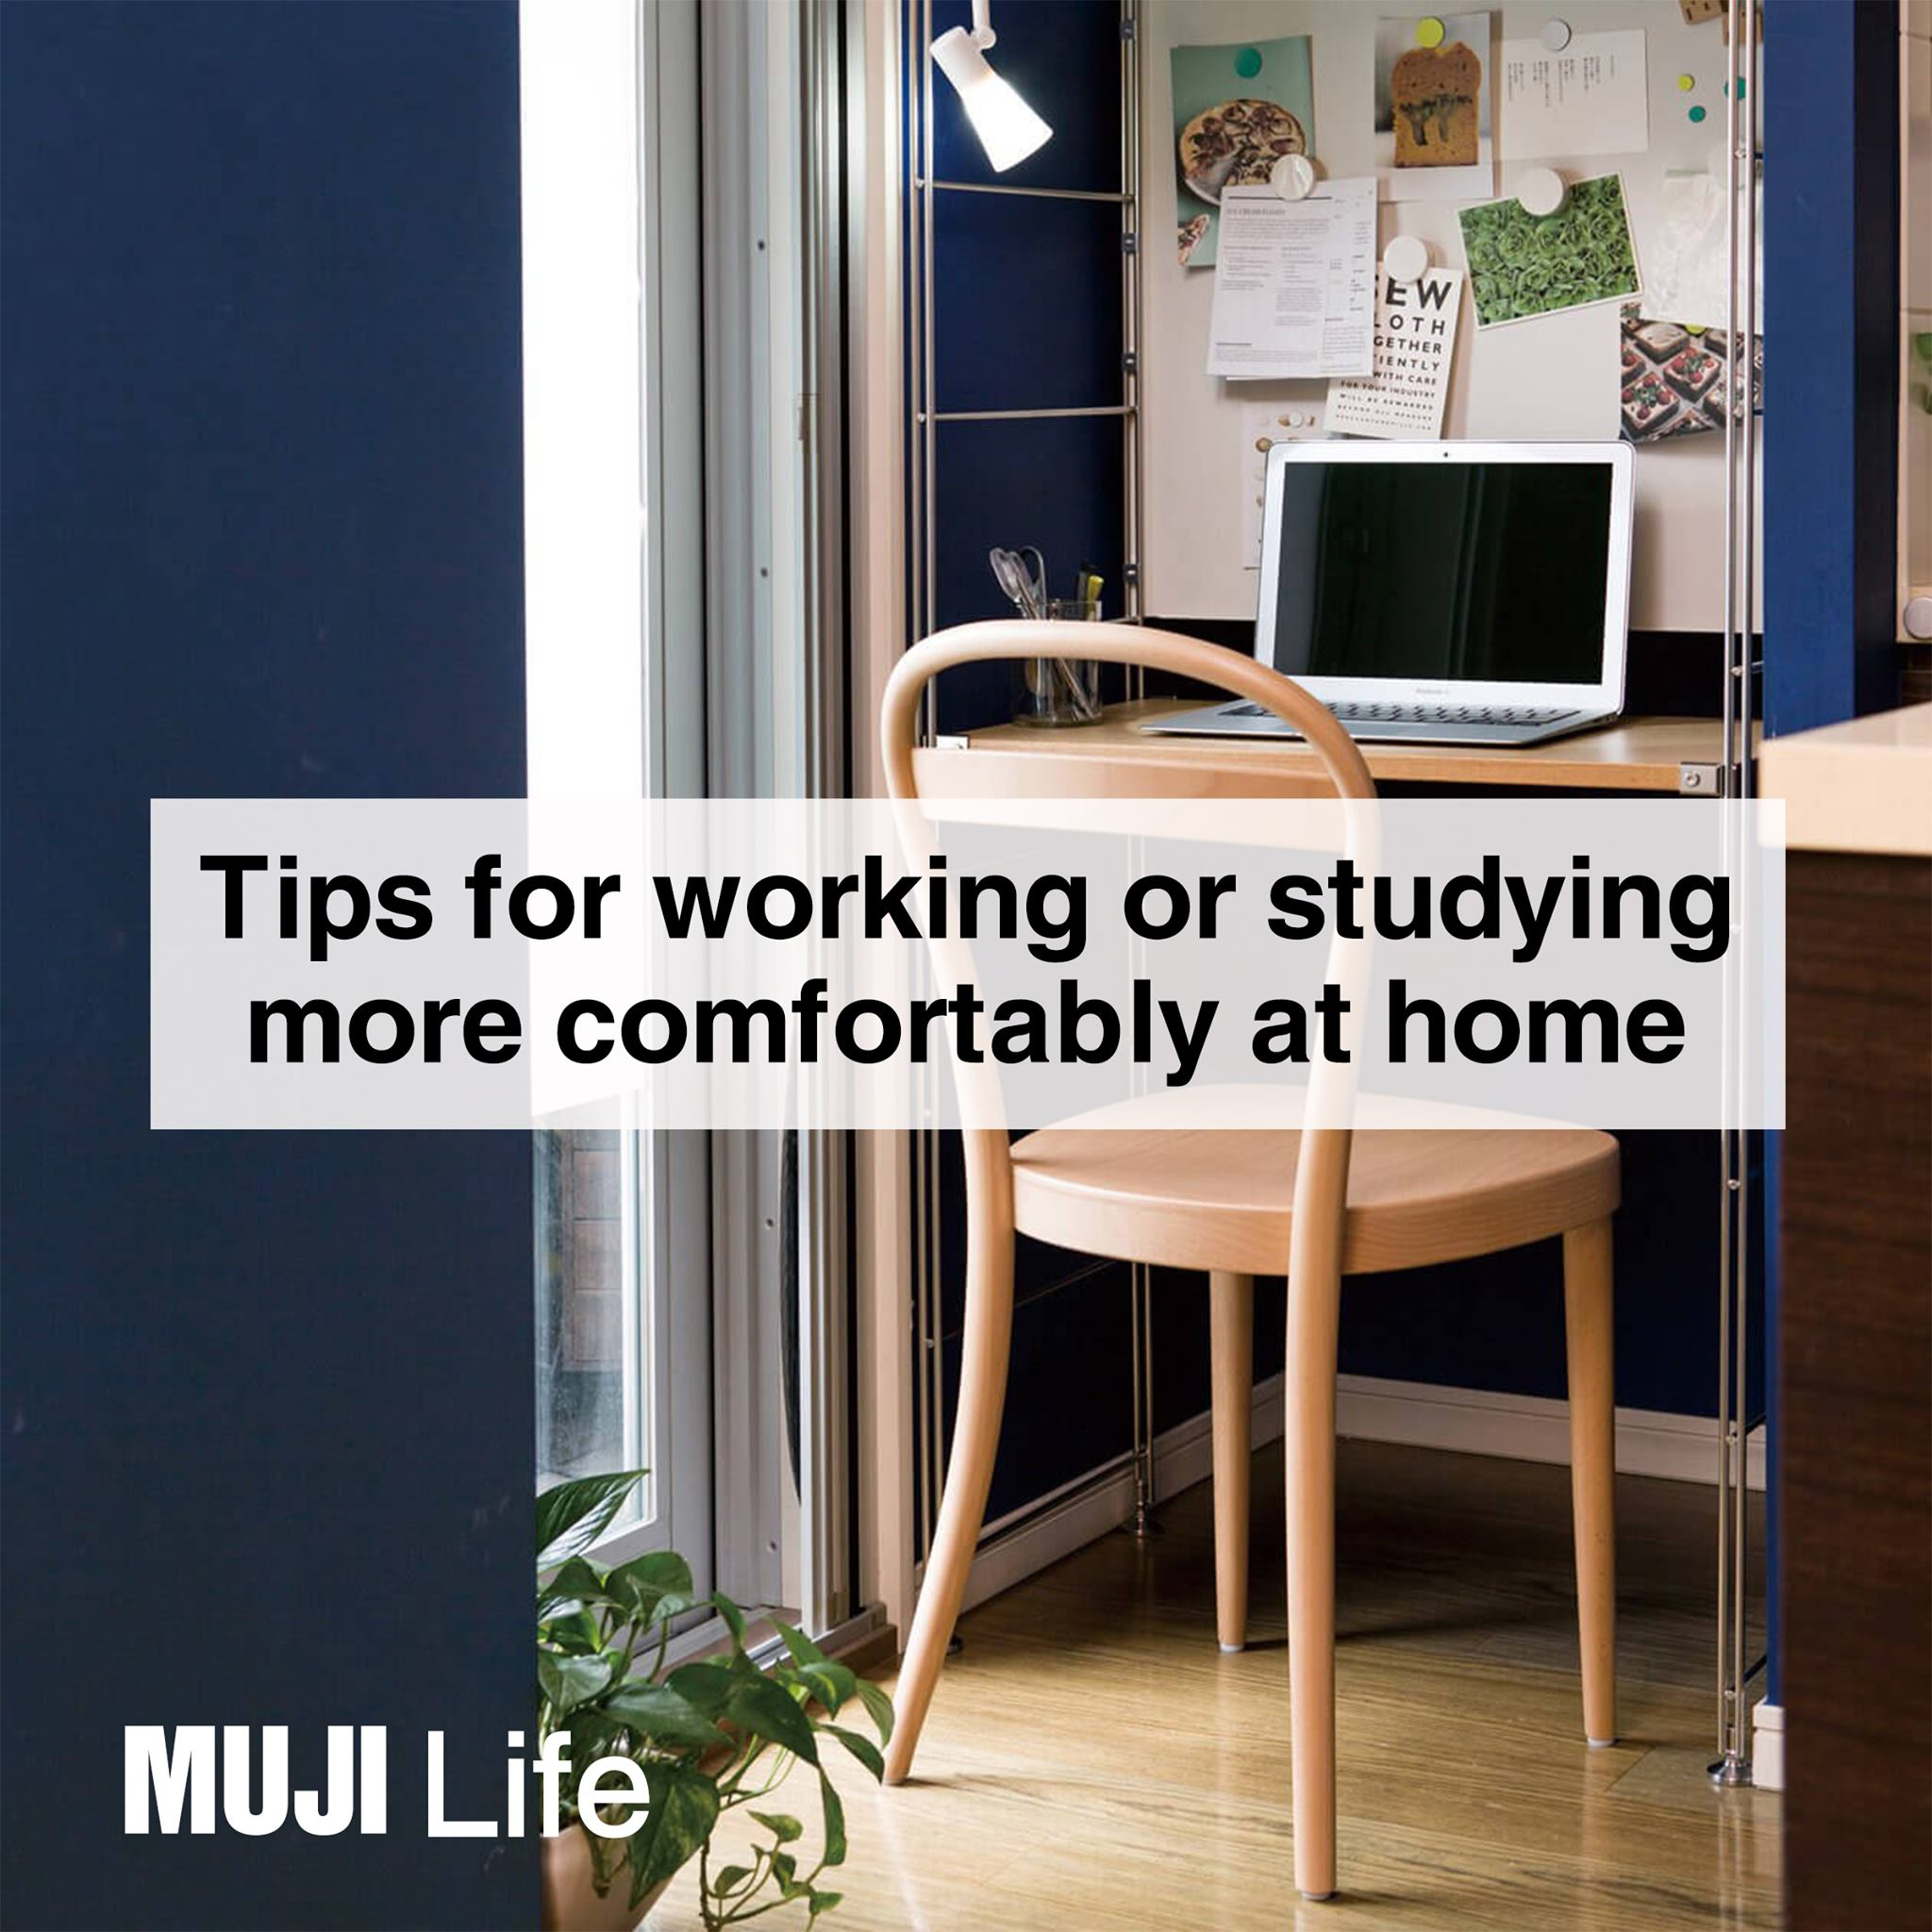 MUJI Life – Work or study more comfortably at home with these tips from MUJI!